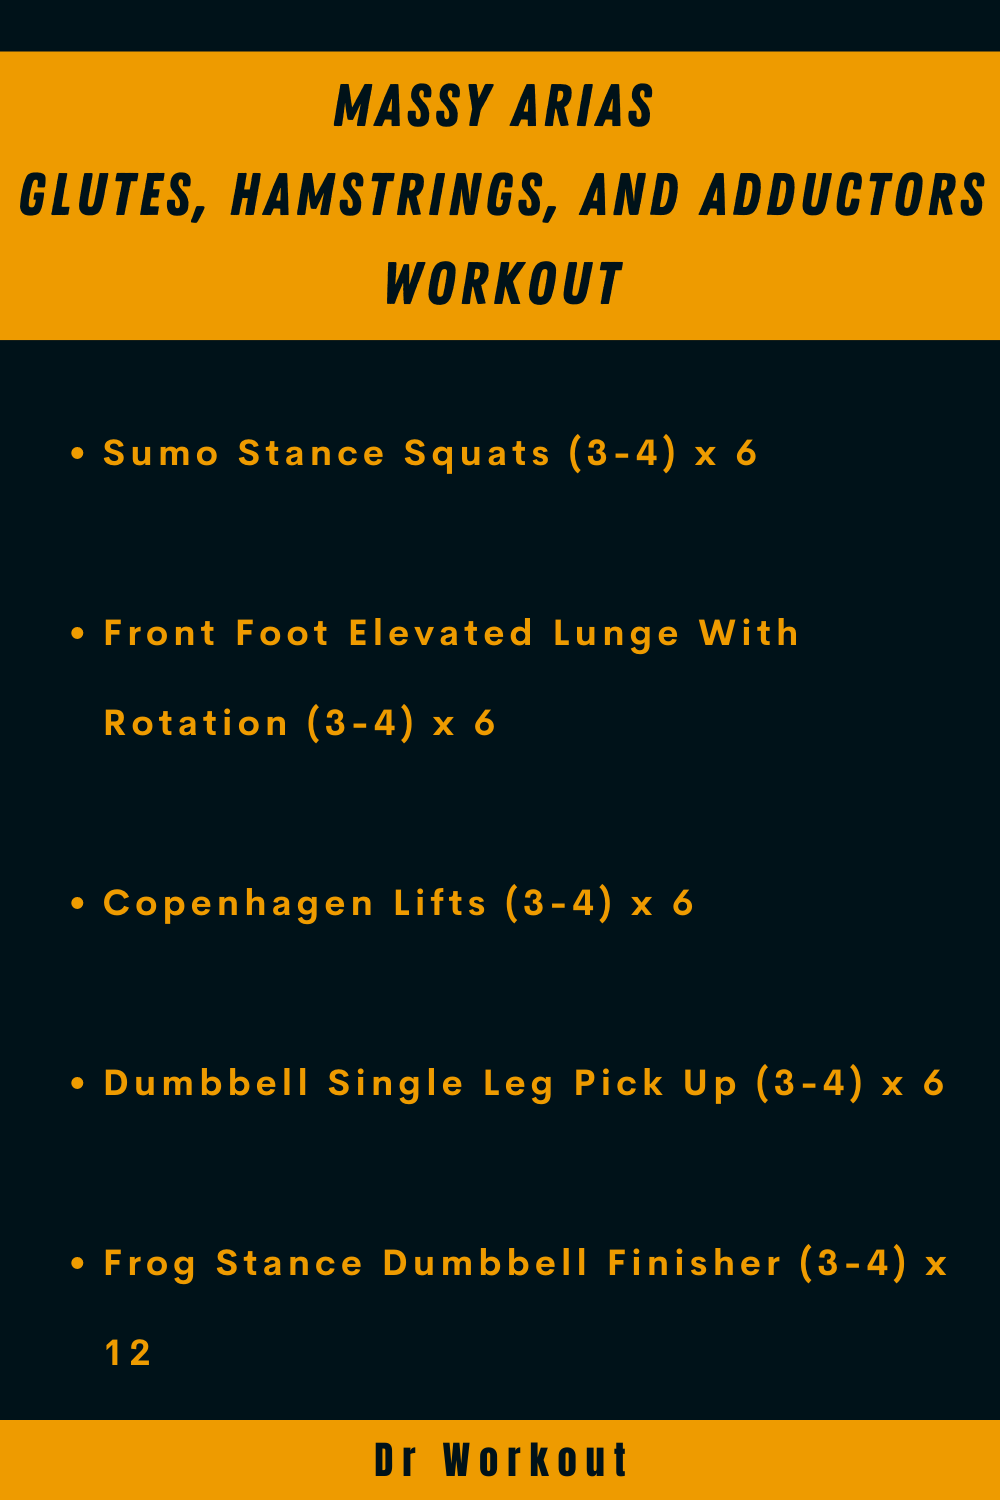 Massy Arias Glutes, Hamstrings, and Adductors Workout